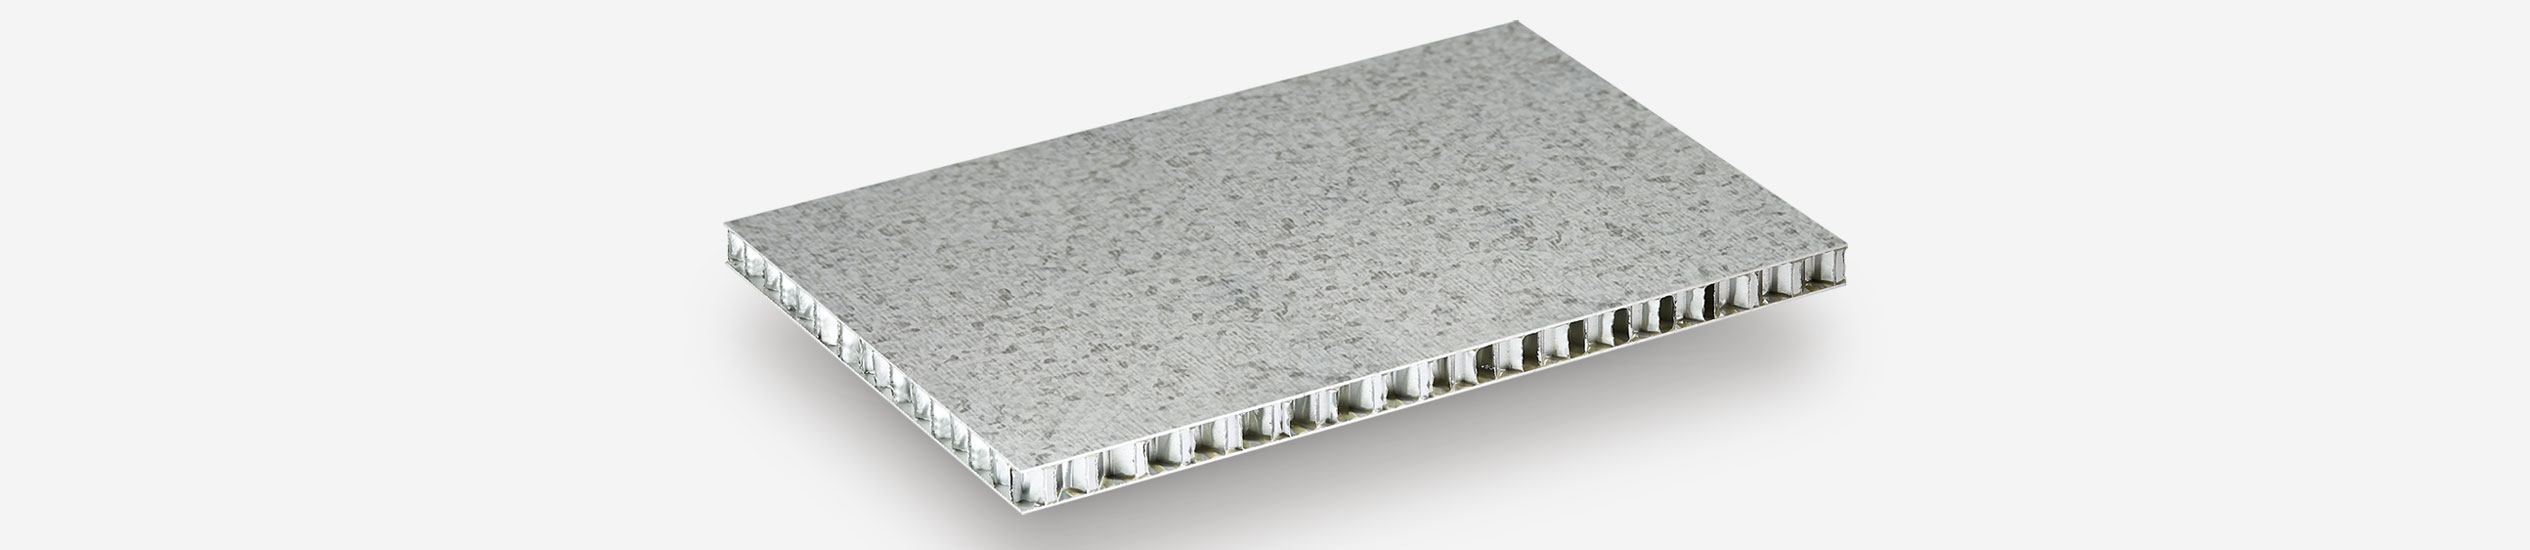 Cel produces sandwich panels in aluminum honeycomb, impregnated with epoxy faced with steel, for ventilated facades and exterior facades Compocel LZ